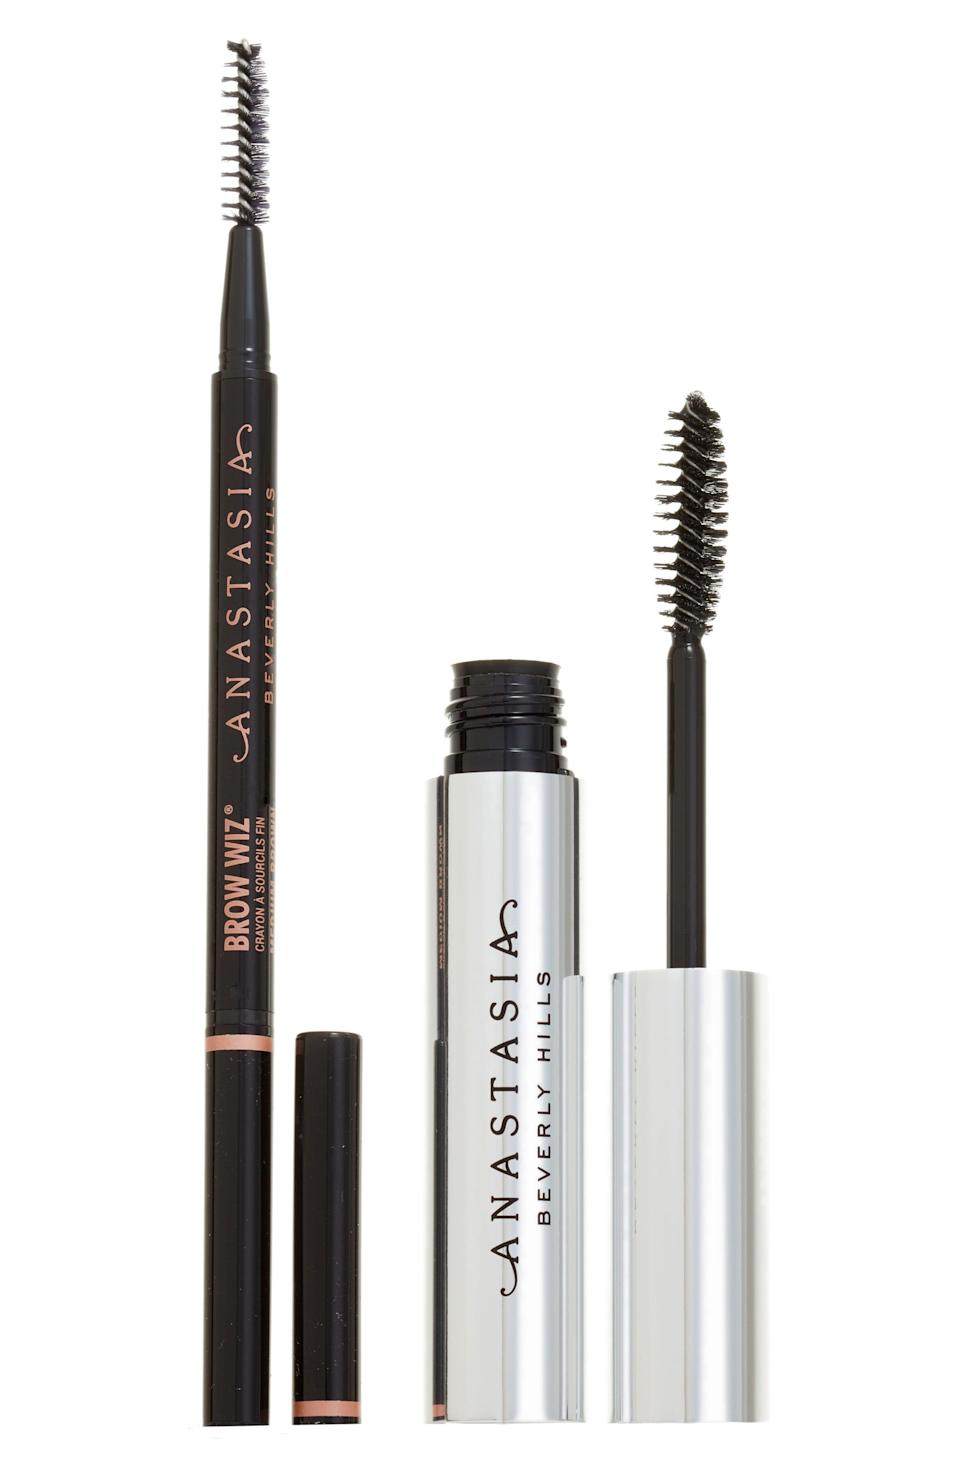 """<p><strong>Anastasia Beverly Hills</strong></p><p>nordstrom.com</p><p><a href=""""https://go.redirectingat.com?id=74968X1596630&url=https%3A%2F%2Fwww.nordstrom.com%2Fs%2Fanastasia-beverly-hills-brow-bae-sics-kit%2F5590148&sref=https%3A%2F%2Fwww.elle.com%2Ffashion%2Fshopping%2Fg33444637%2Fnordstrom-anniversary-sale-2020%2F"""" rel=""""nofollow noopener"""" target=""""_blank"""" data-ylk=""""slk:Shop Now"""" class=""""link rapid-noclick-resp"""">Shop Now</a></p><p><del>$45</del></p><p><strong>$27</strong></p>"""